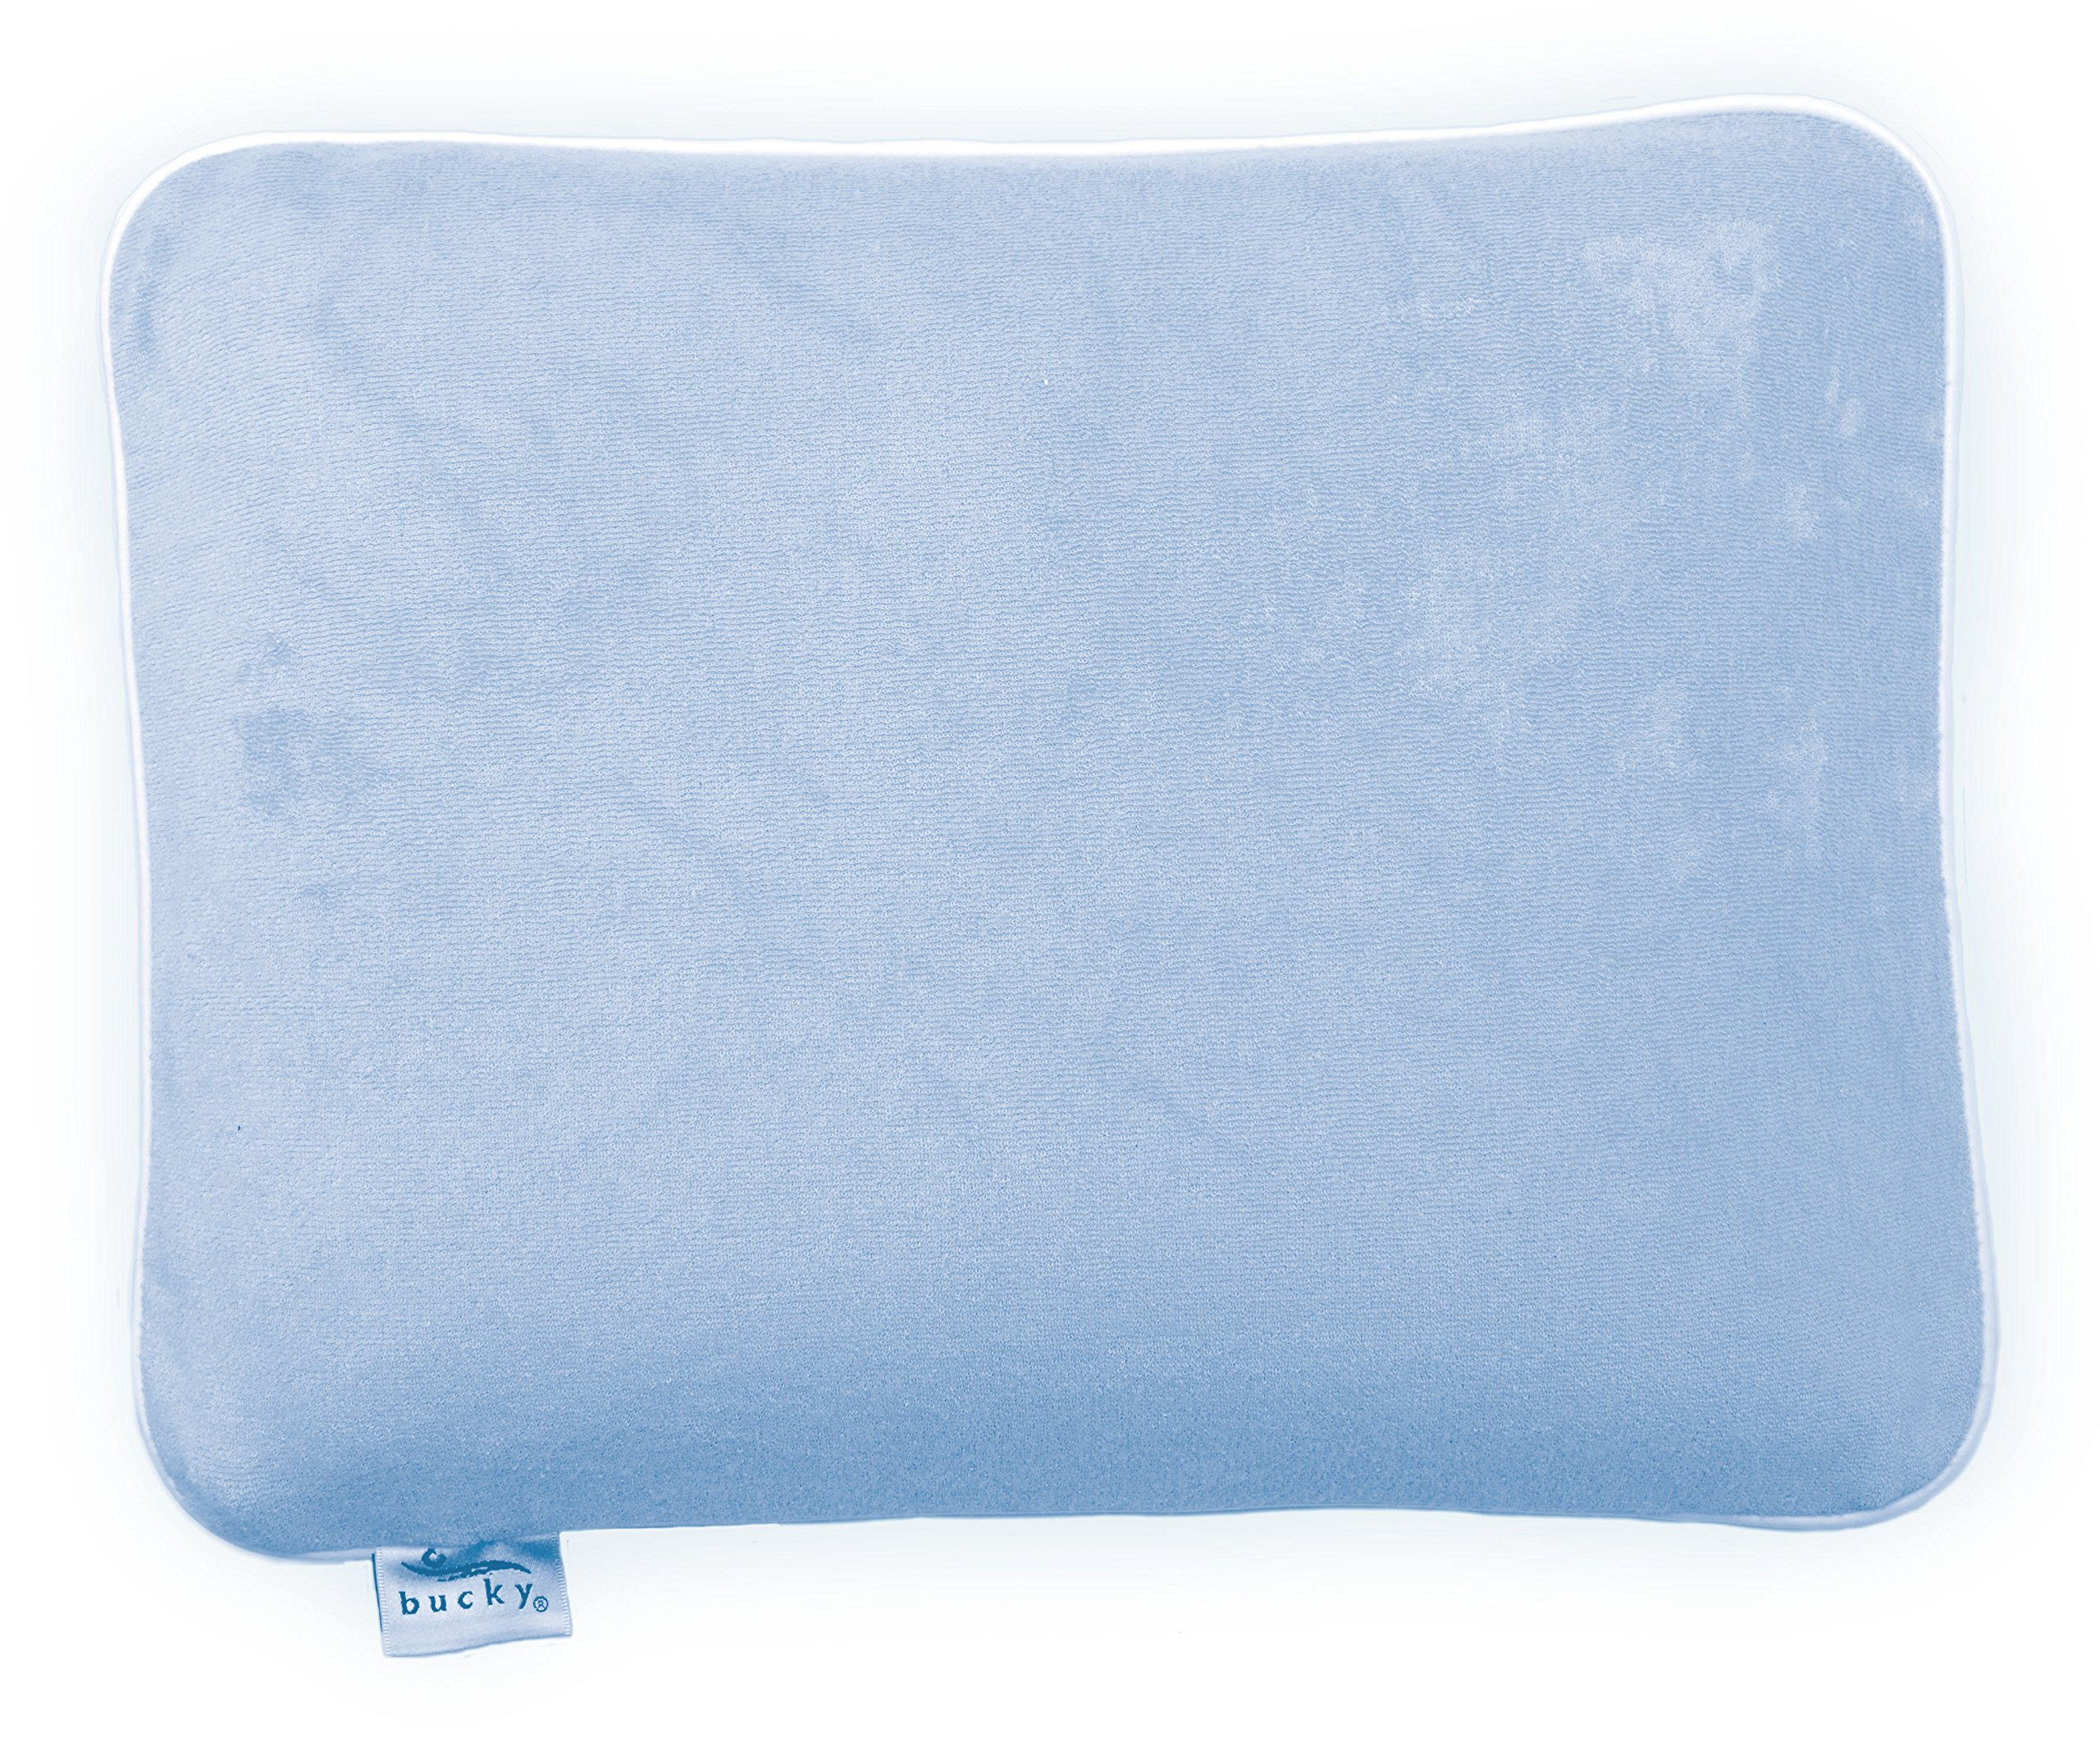 Bucky T750WBL Small Pillow for Travel and Kids, All Natural Millet Hull Fill, Extra Soft Cover, 13.5x10 - Blue